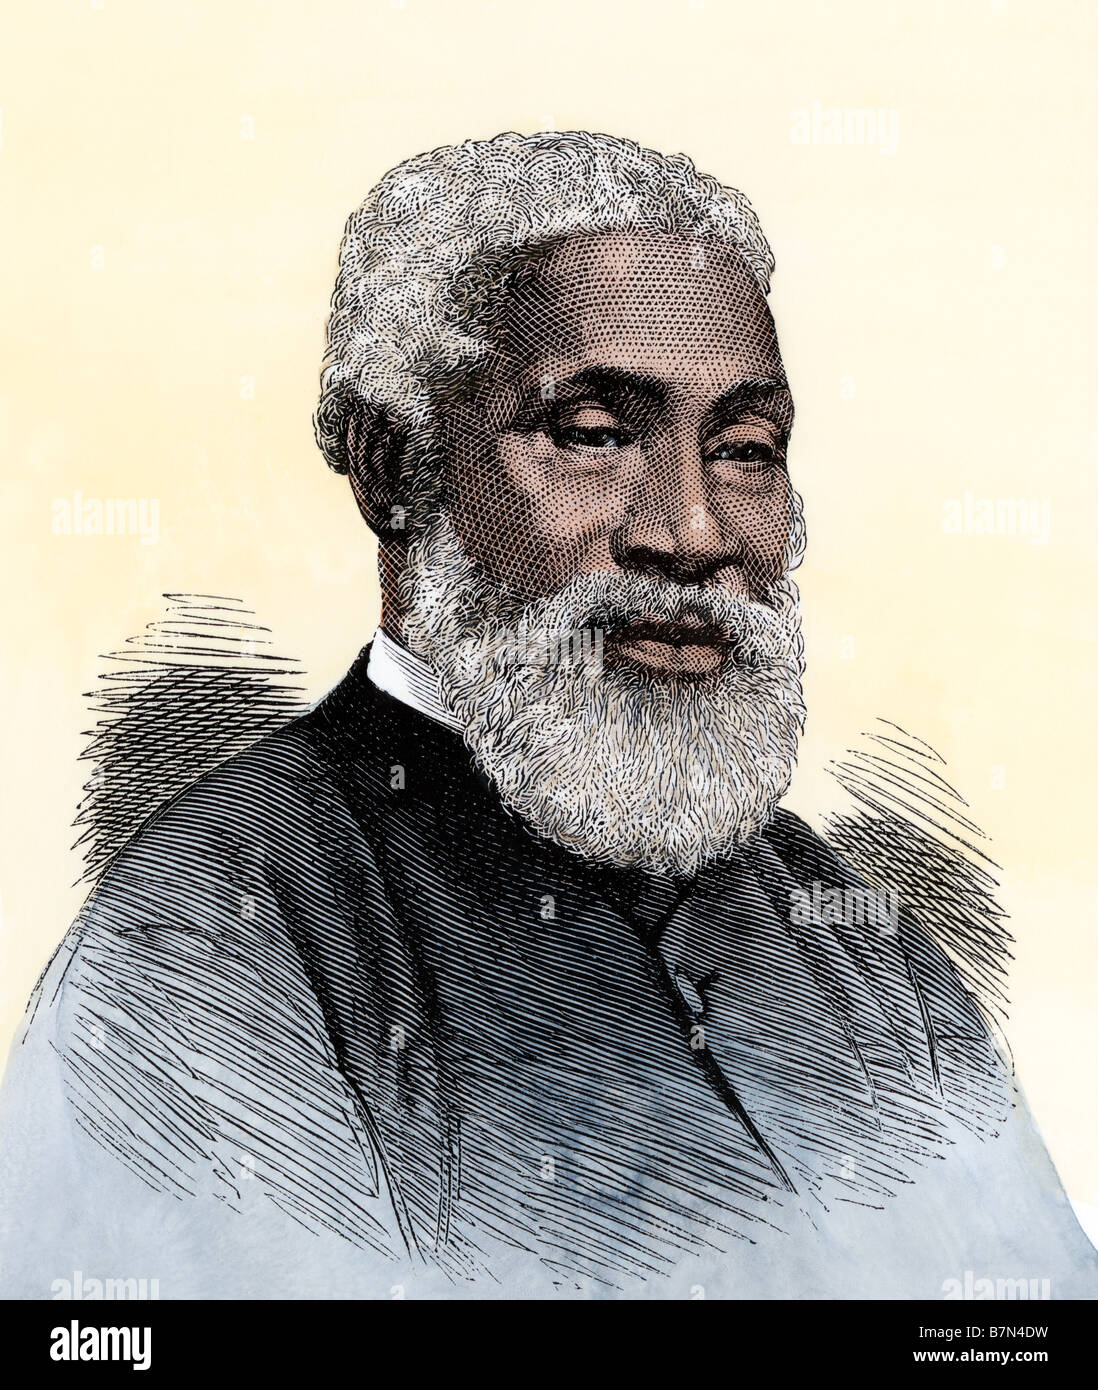 Josiah Henson, the black slave alleged to have been Harriet Beecher Stowe's model for Uncle Tom. Hand-colored - Stock Image